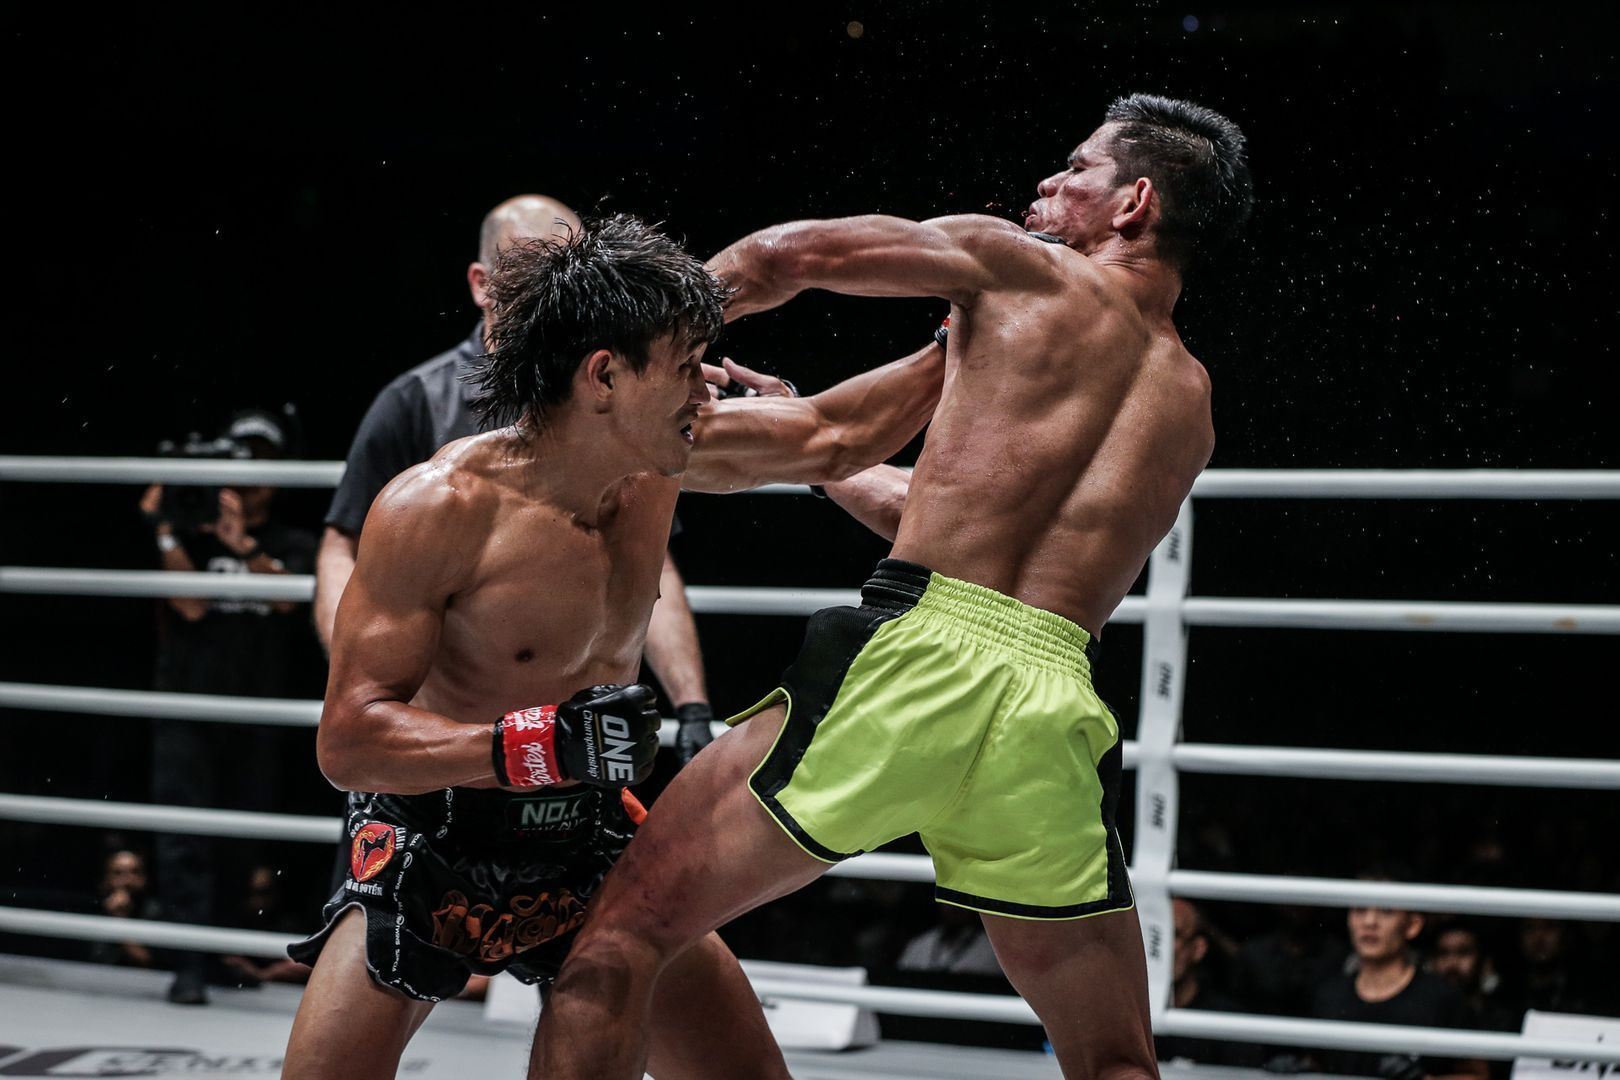 Nguyen Tran Duy Nhat defeats Azwan Che Wil at ONE IMMORTAL TRIUMPH